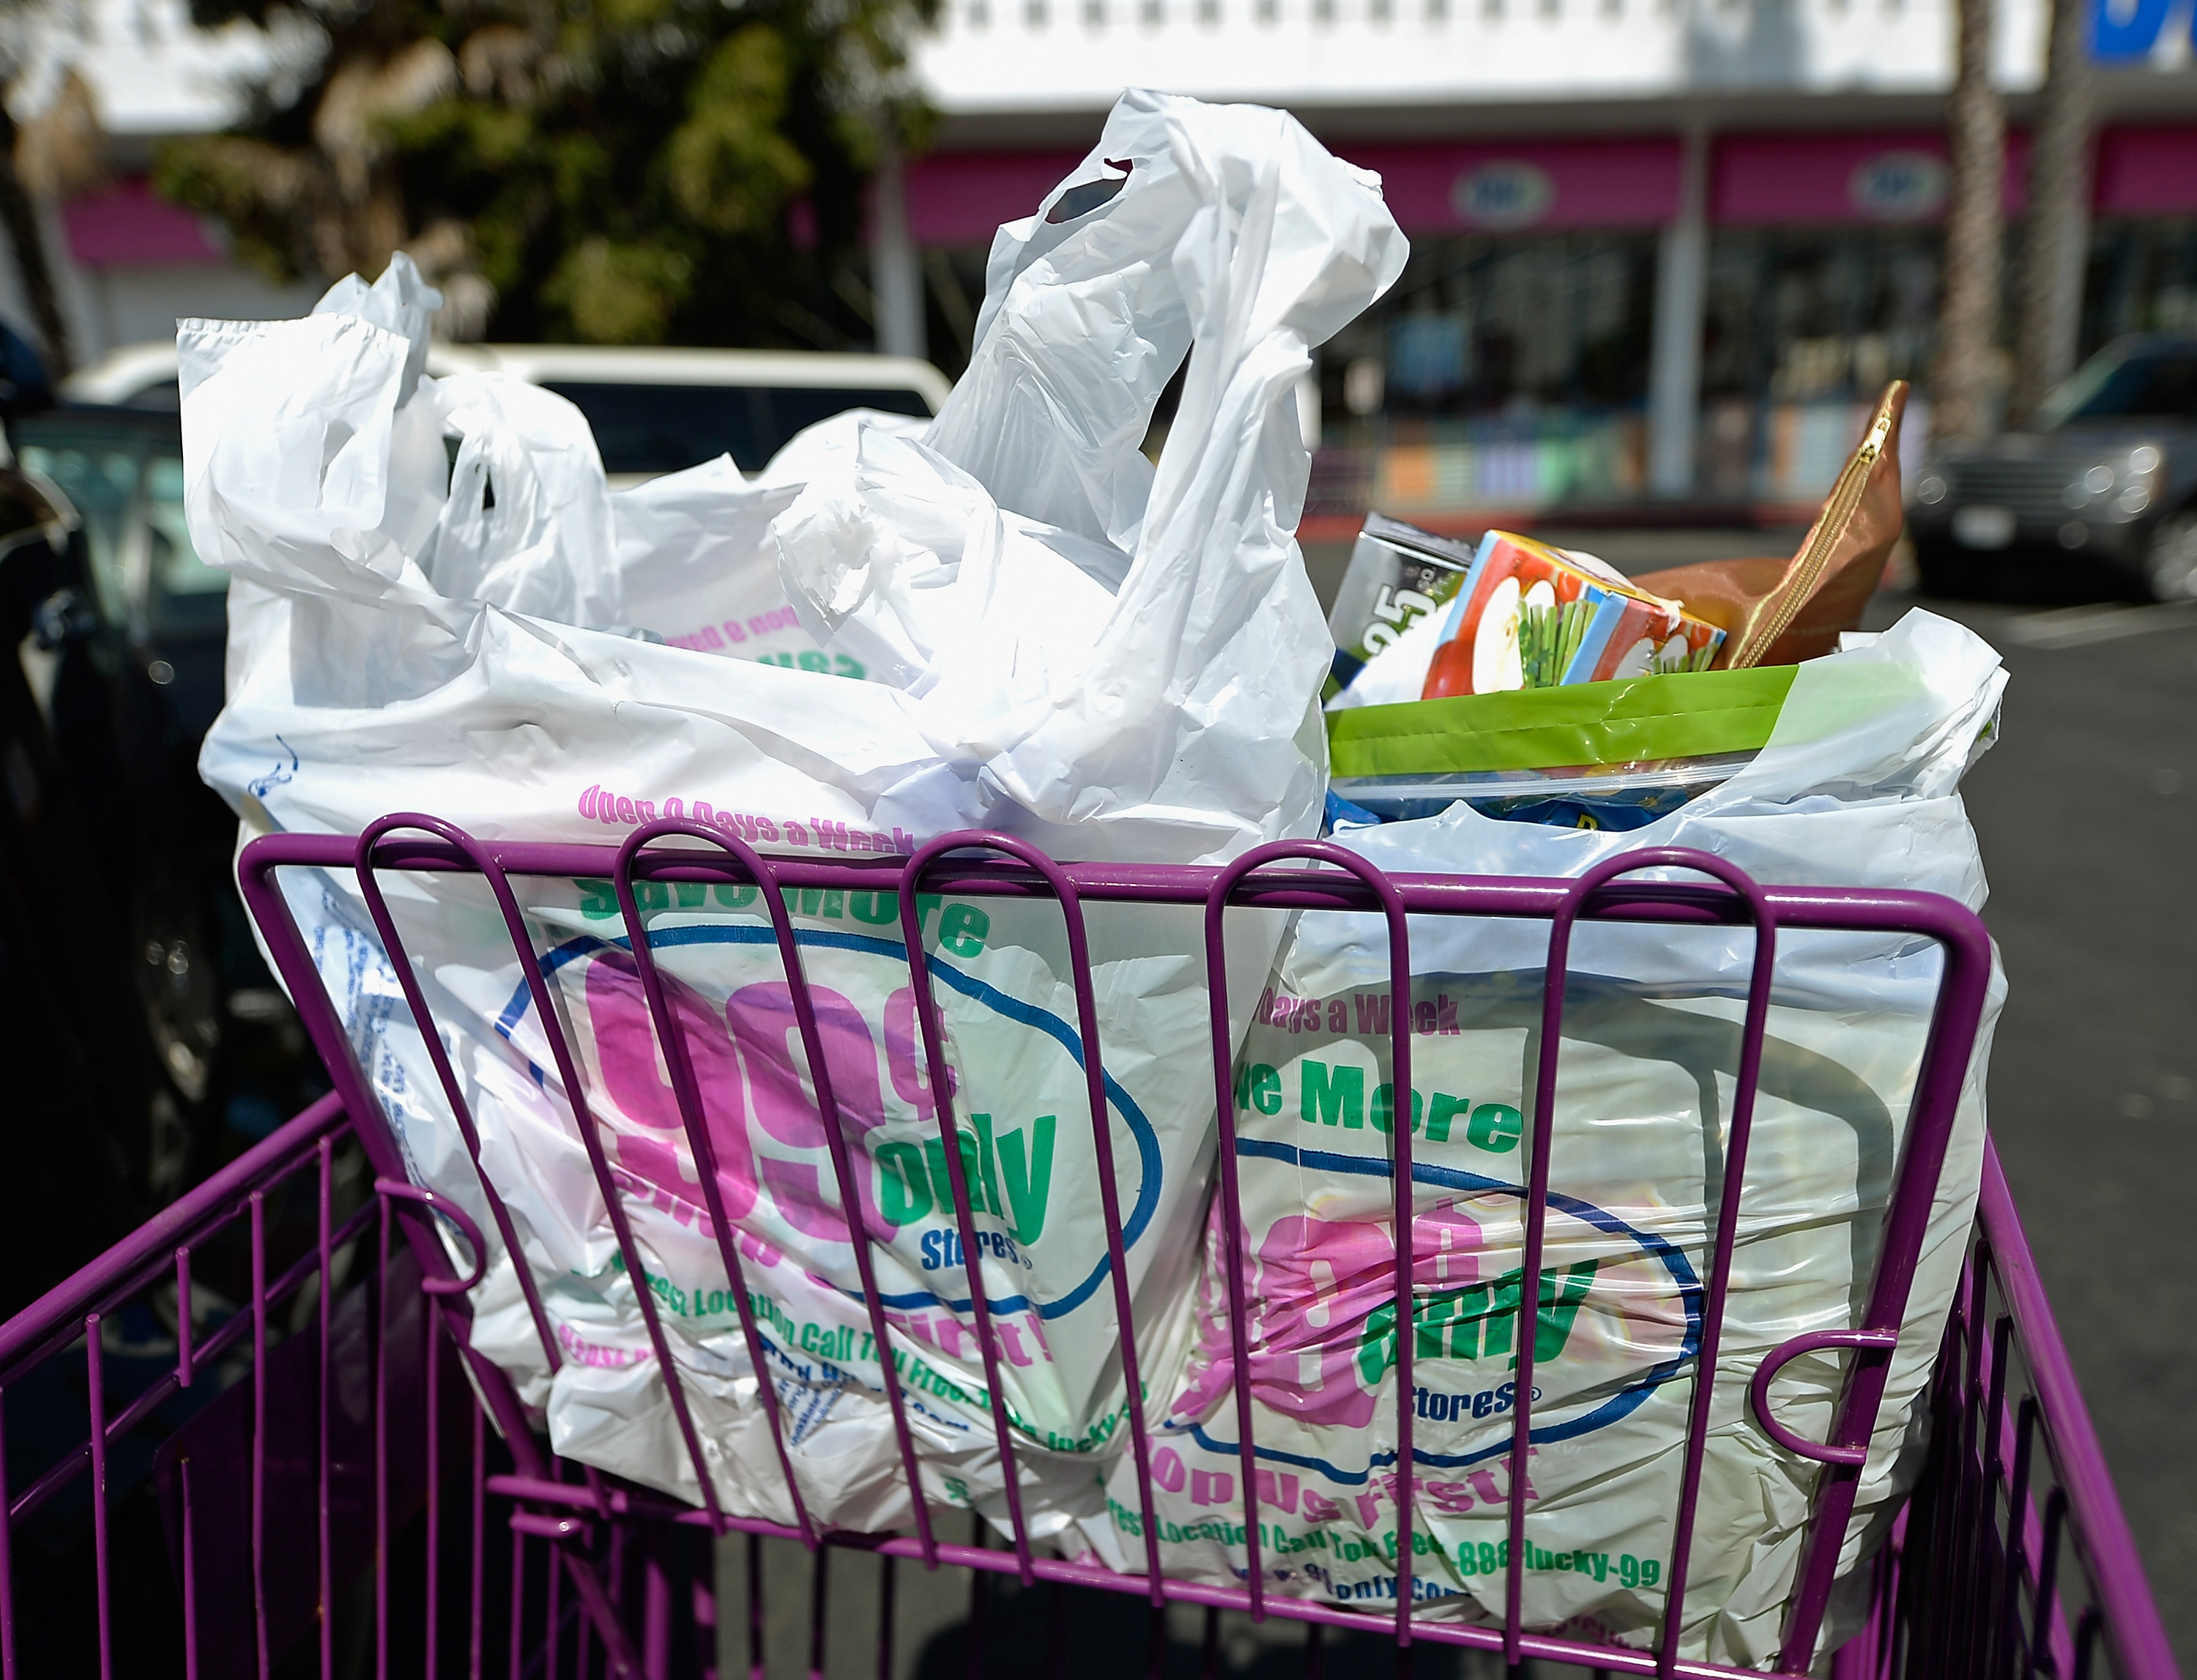 LOS ANGELES, CA - JUNE 18:  Shoppers use plastic grocery bags after shopping at the 99 Cents Only Store on June 18, 2013 in Los Angeles, California.  ...